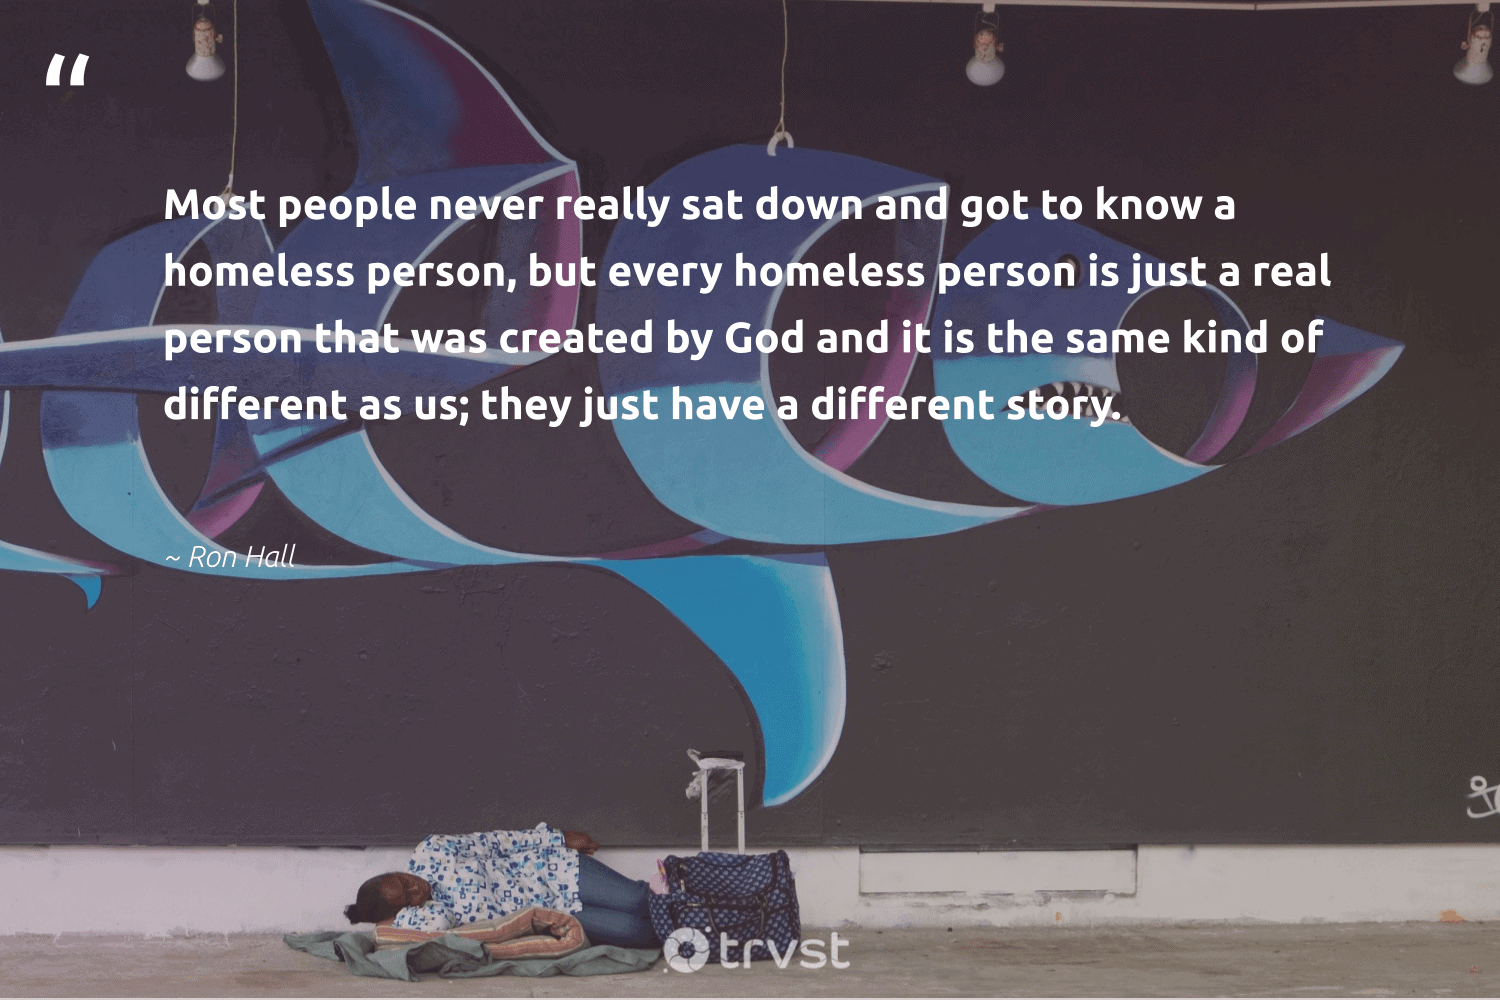 """""""Most people never really sat down and got to know a homeless person, but every homeless person is just a real person that was created by God and it is the same kind of different as us; they just have a different story.""""  - Ron Hall #trvst #quotes #homelessness #homeless #weareallone #equalrights #socialimpact #equalopportunity #sustainablefutures #beinspired #inclusion #makeadifference"""